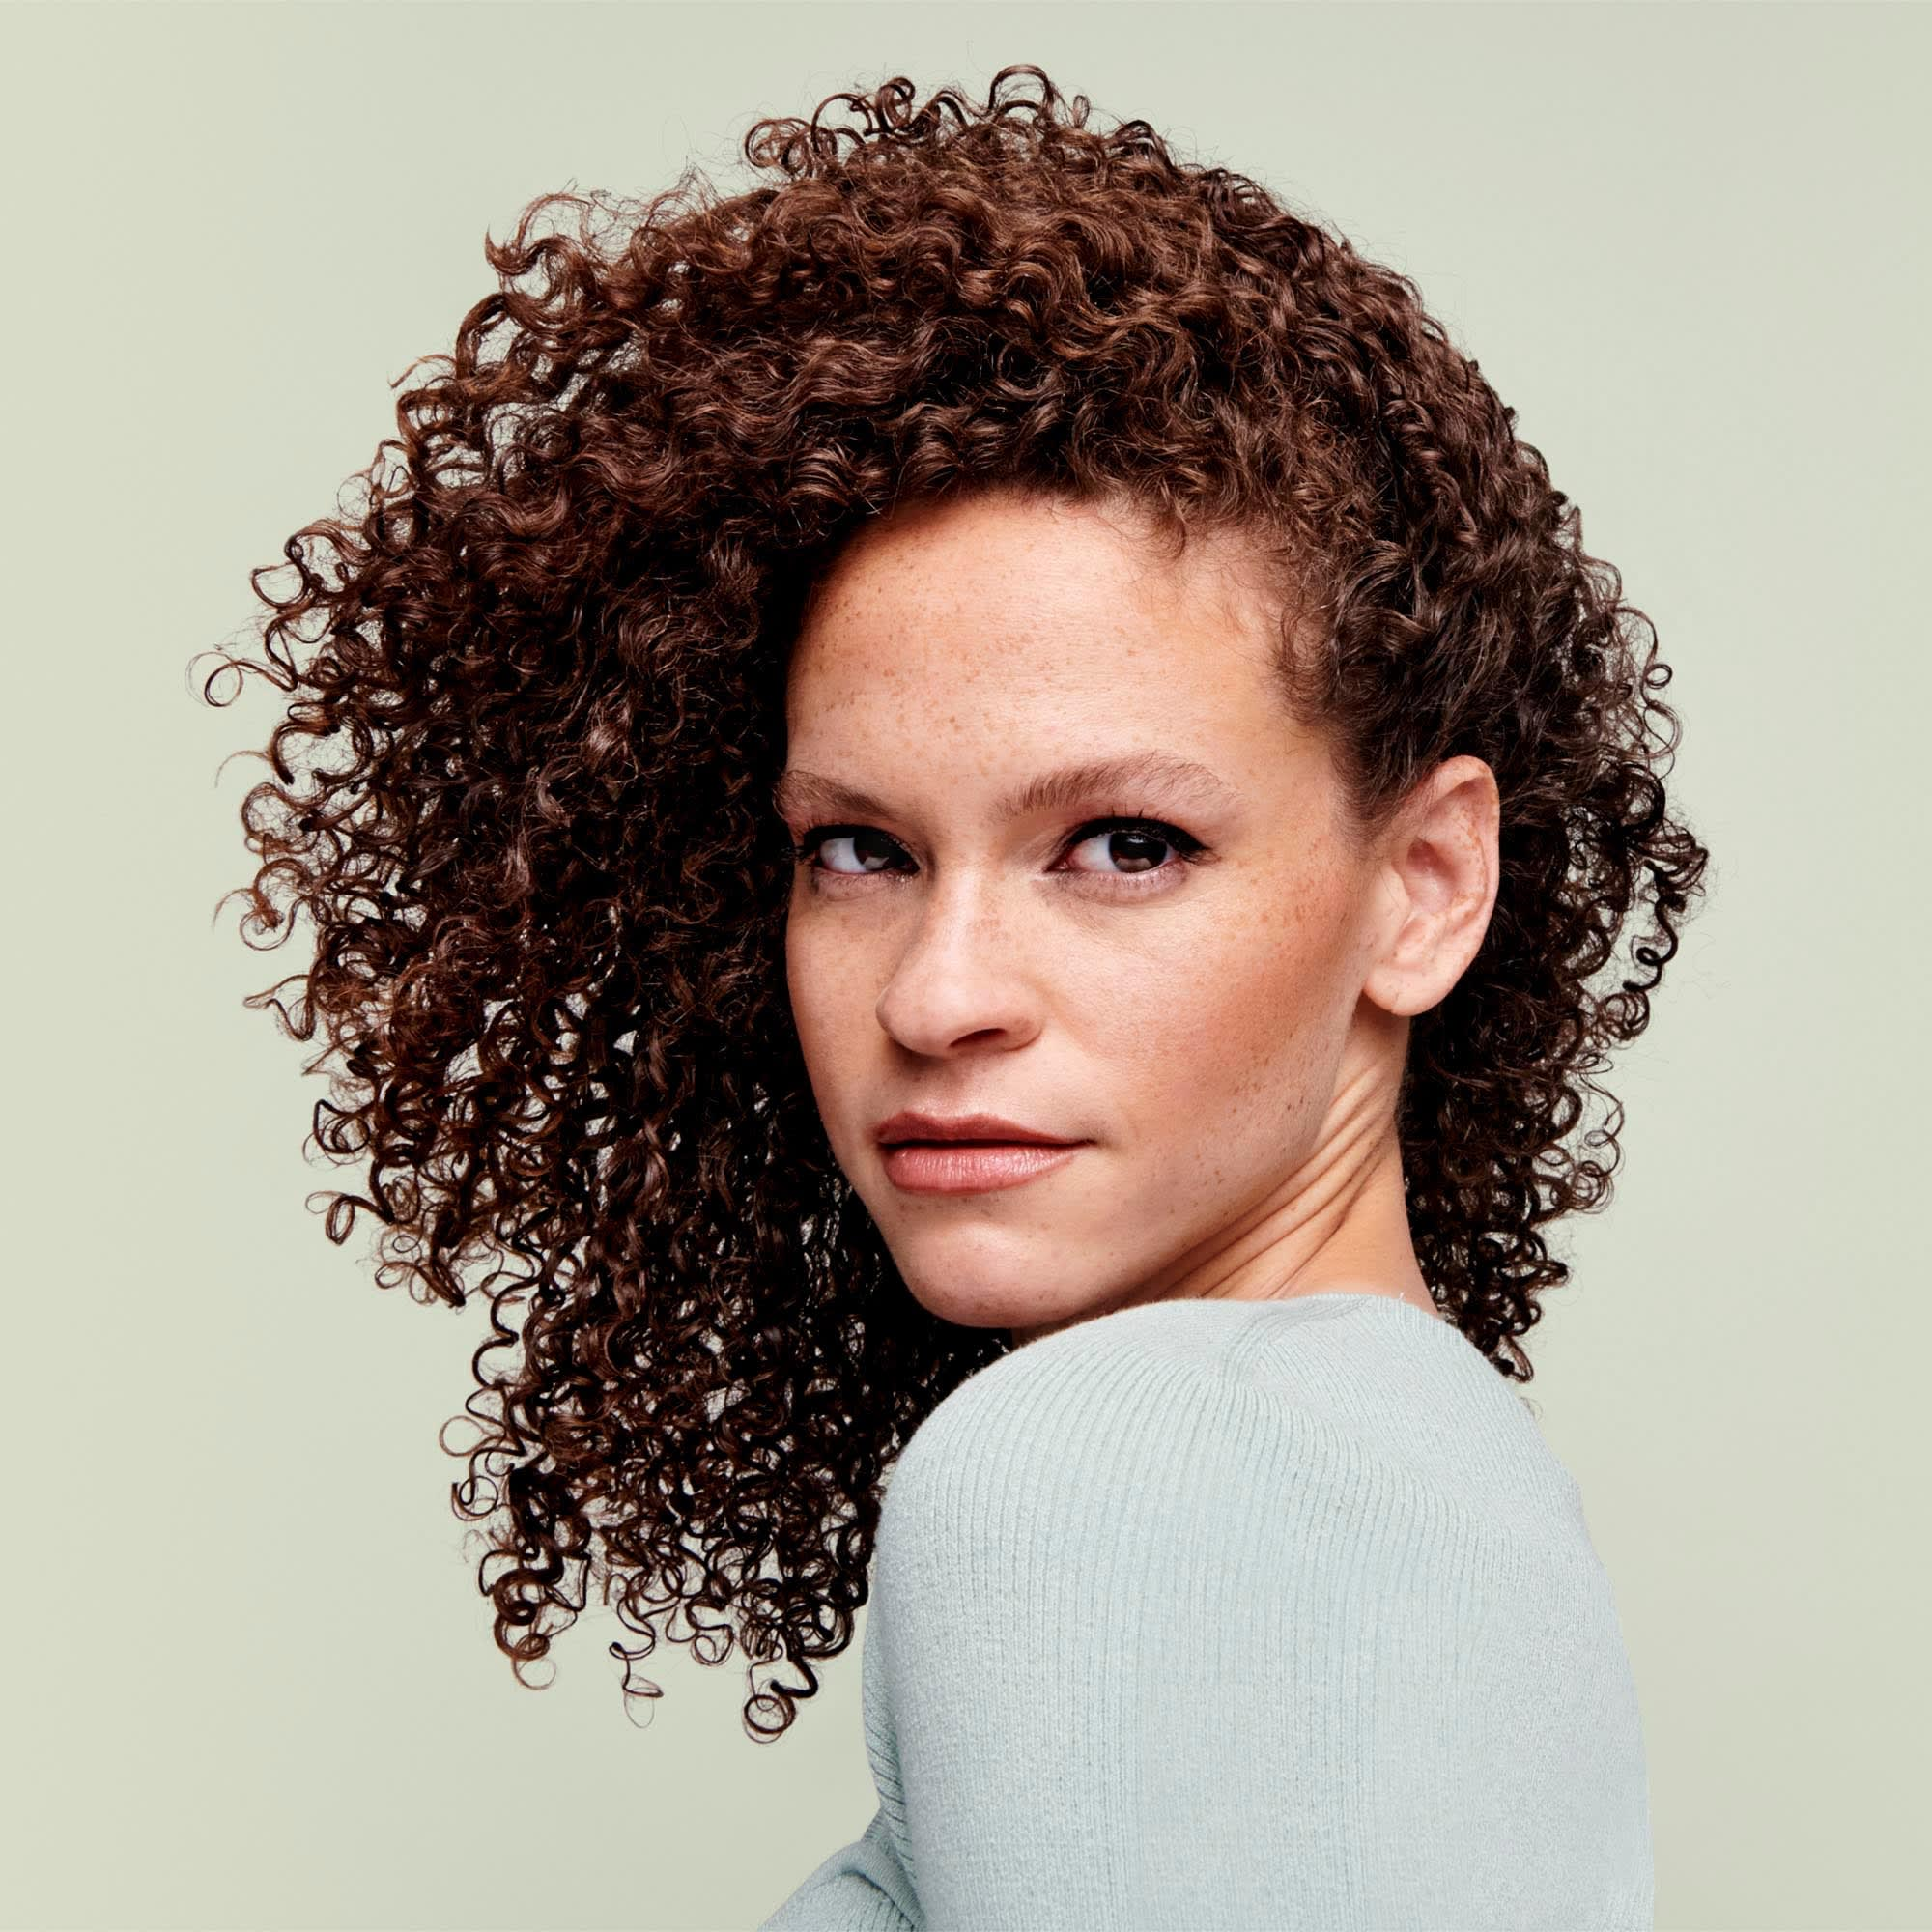 Model with medium to coarse hair texture